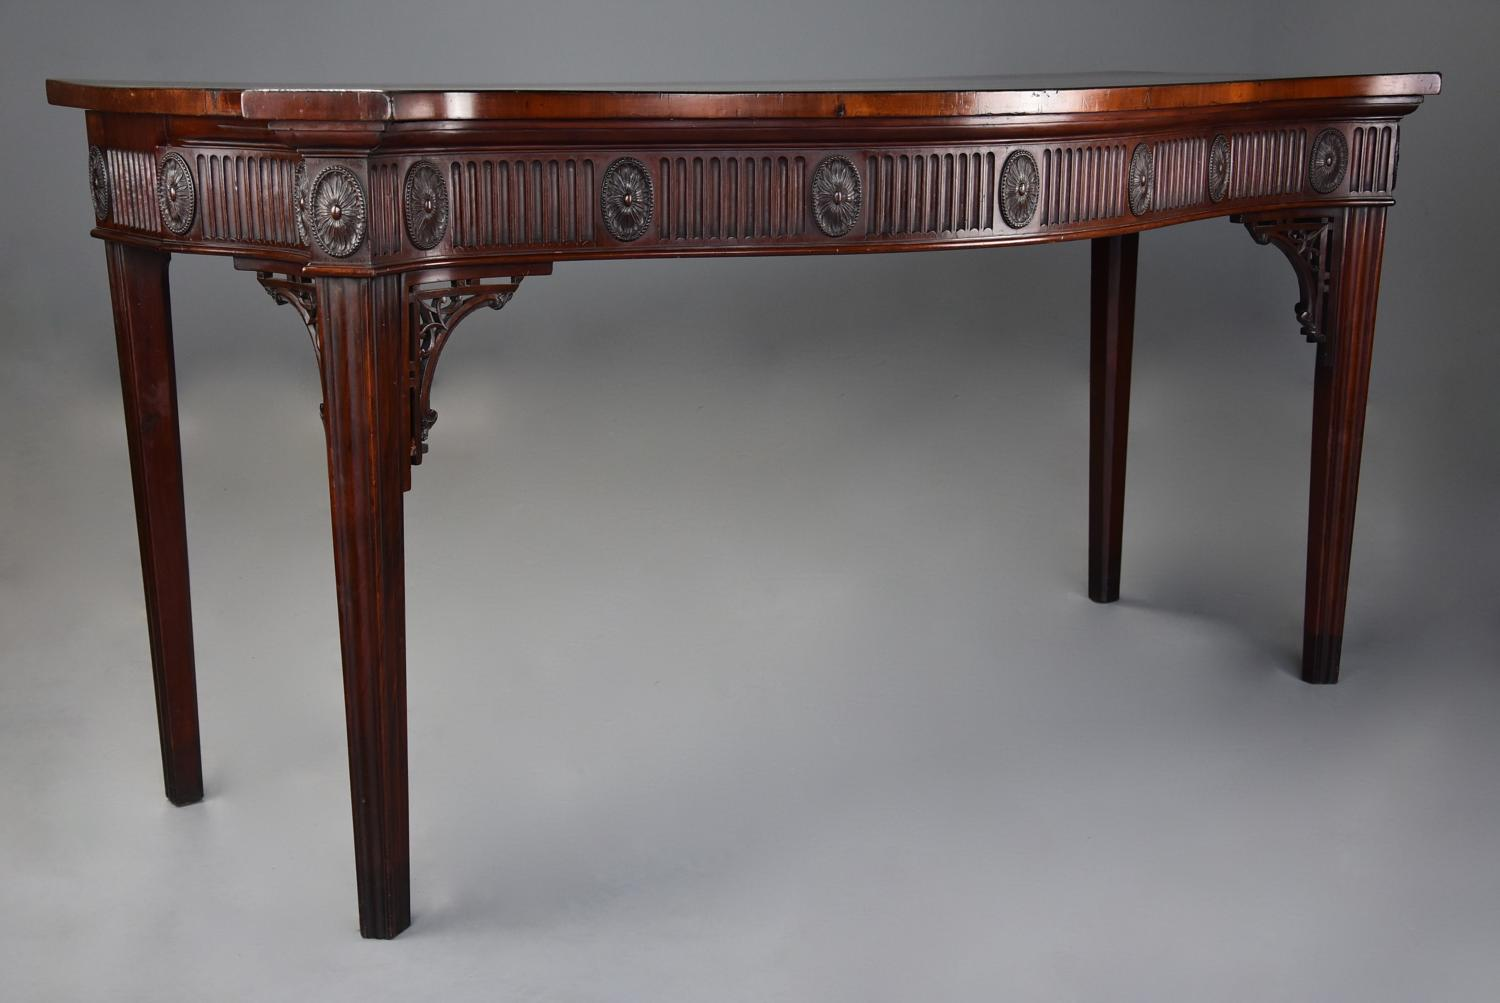 19thc mahogany serpentine shaped serving table in the Adam style